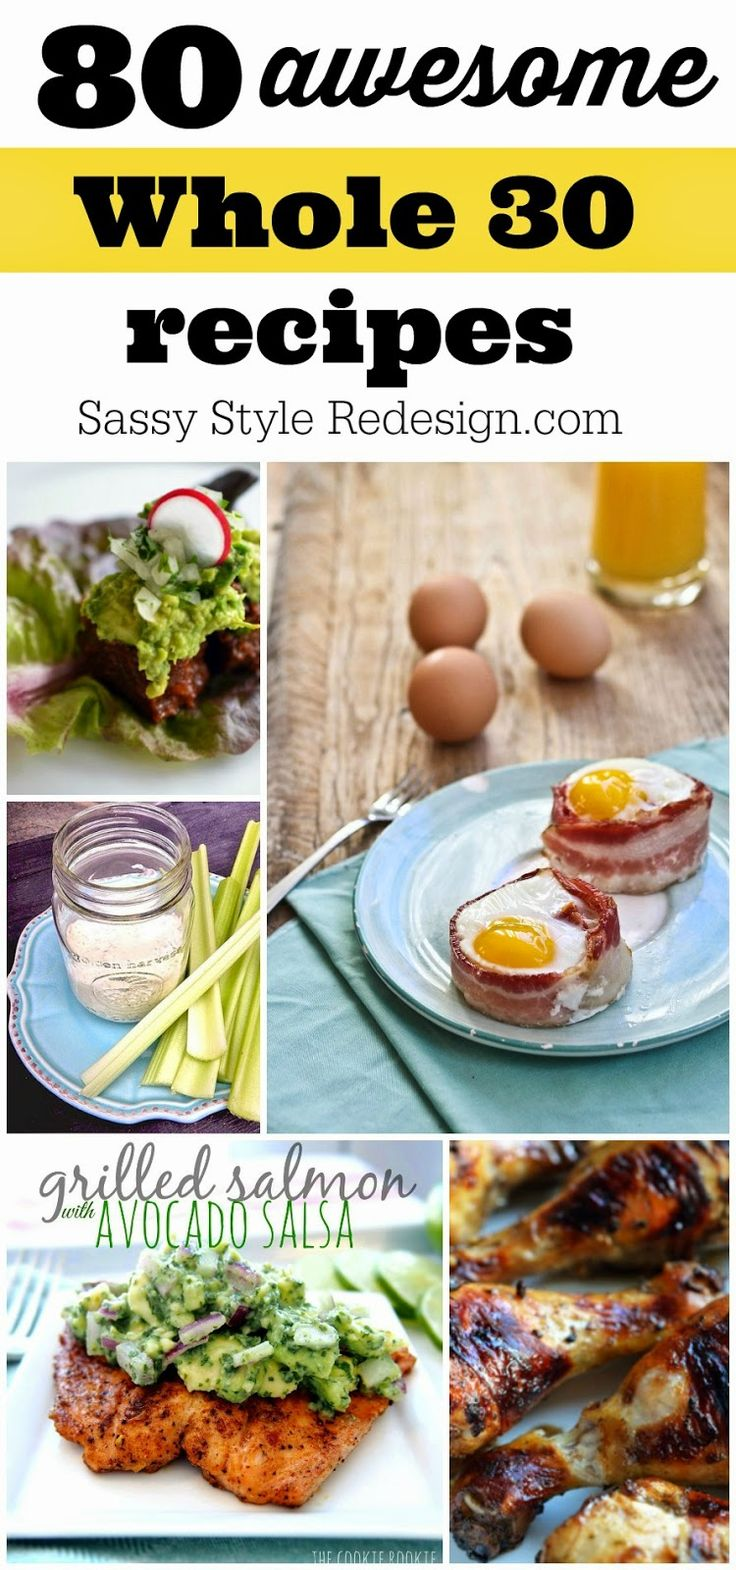 80 whole 30 recipes! sassystyleredesign.com,